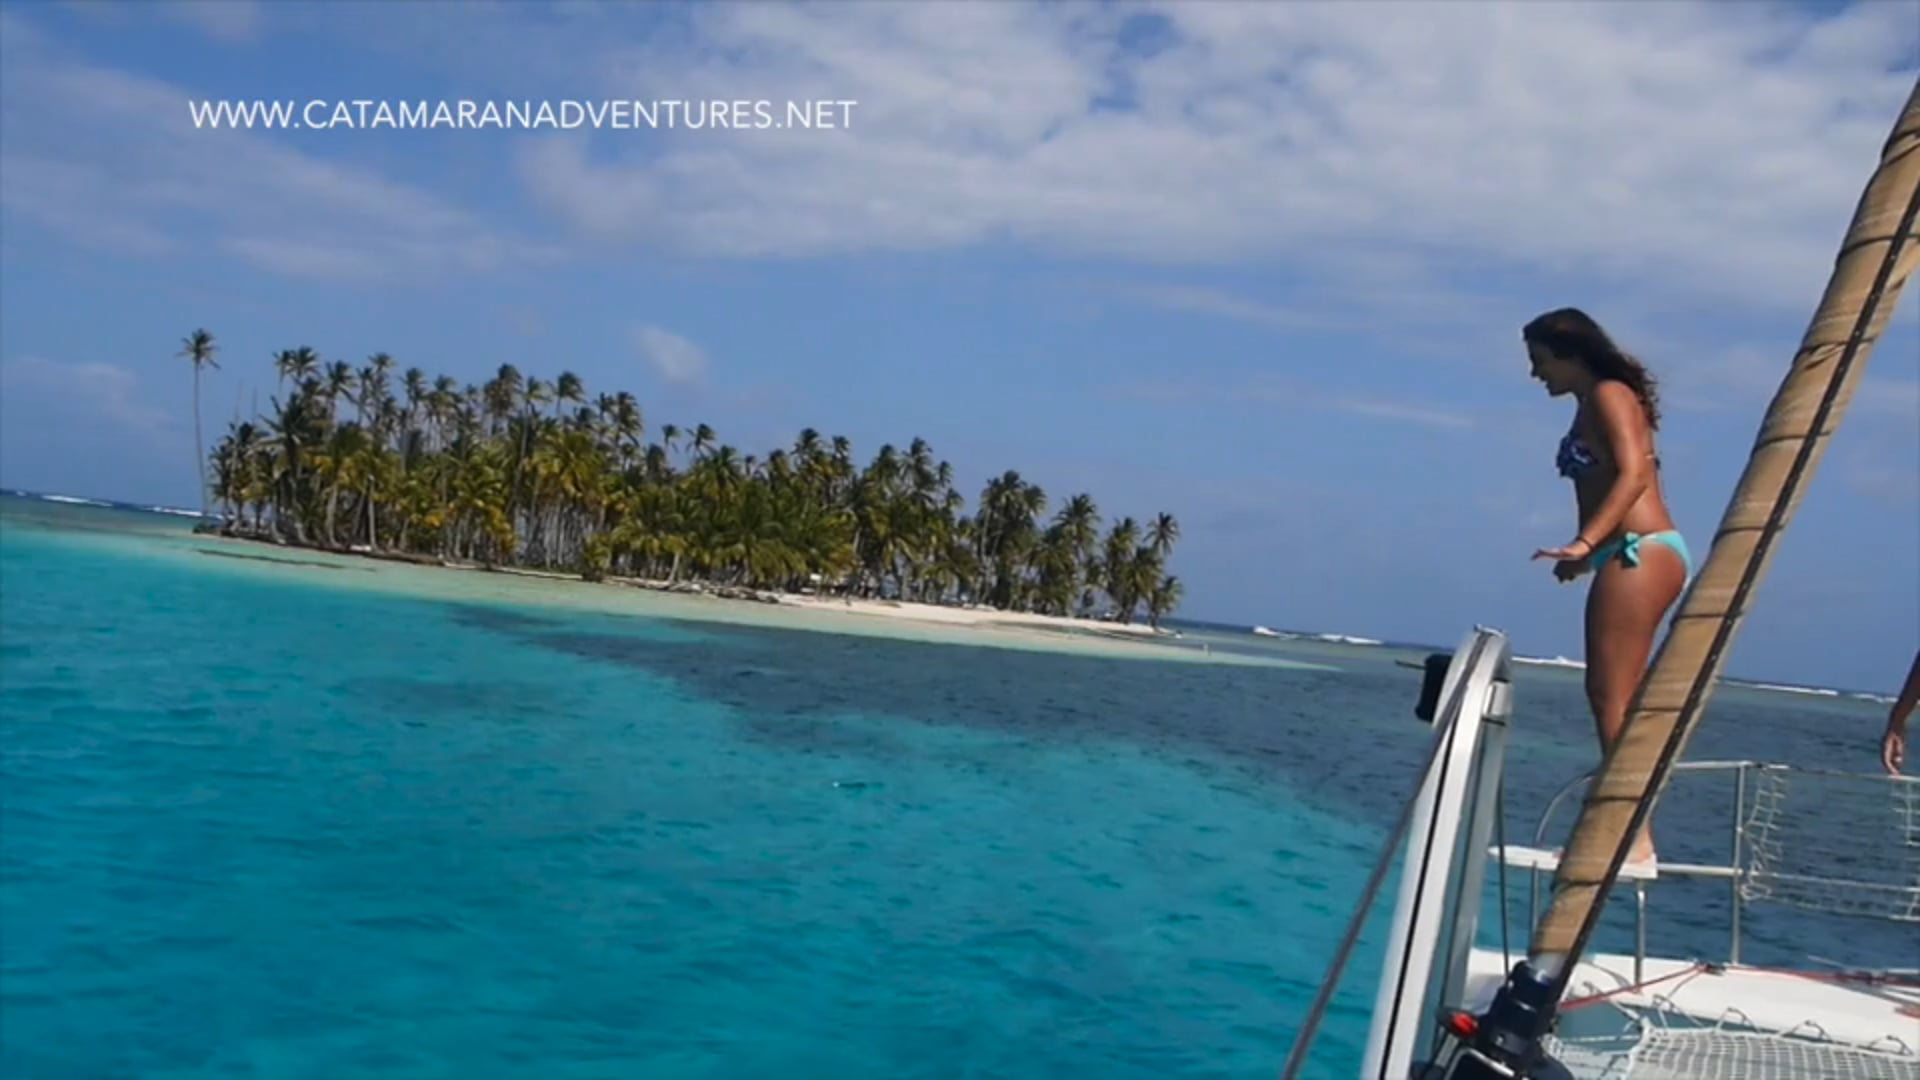 San Blas sailing on a Catamaran: discover paradise with your family